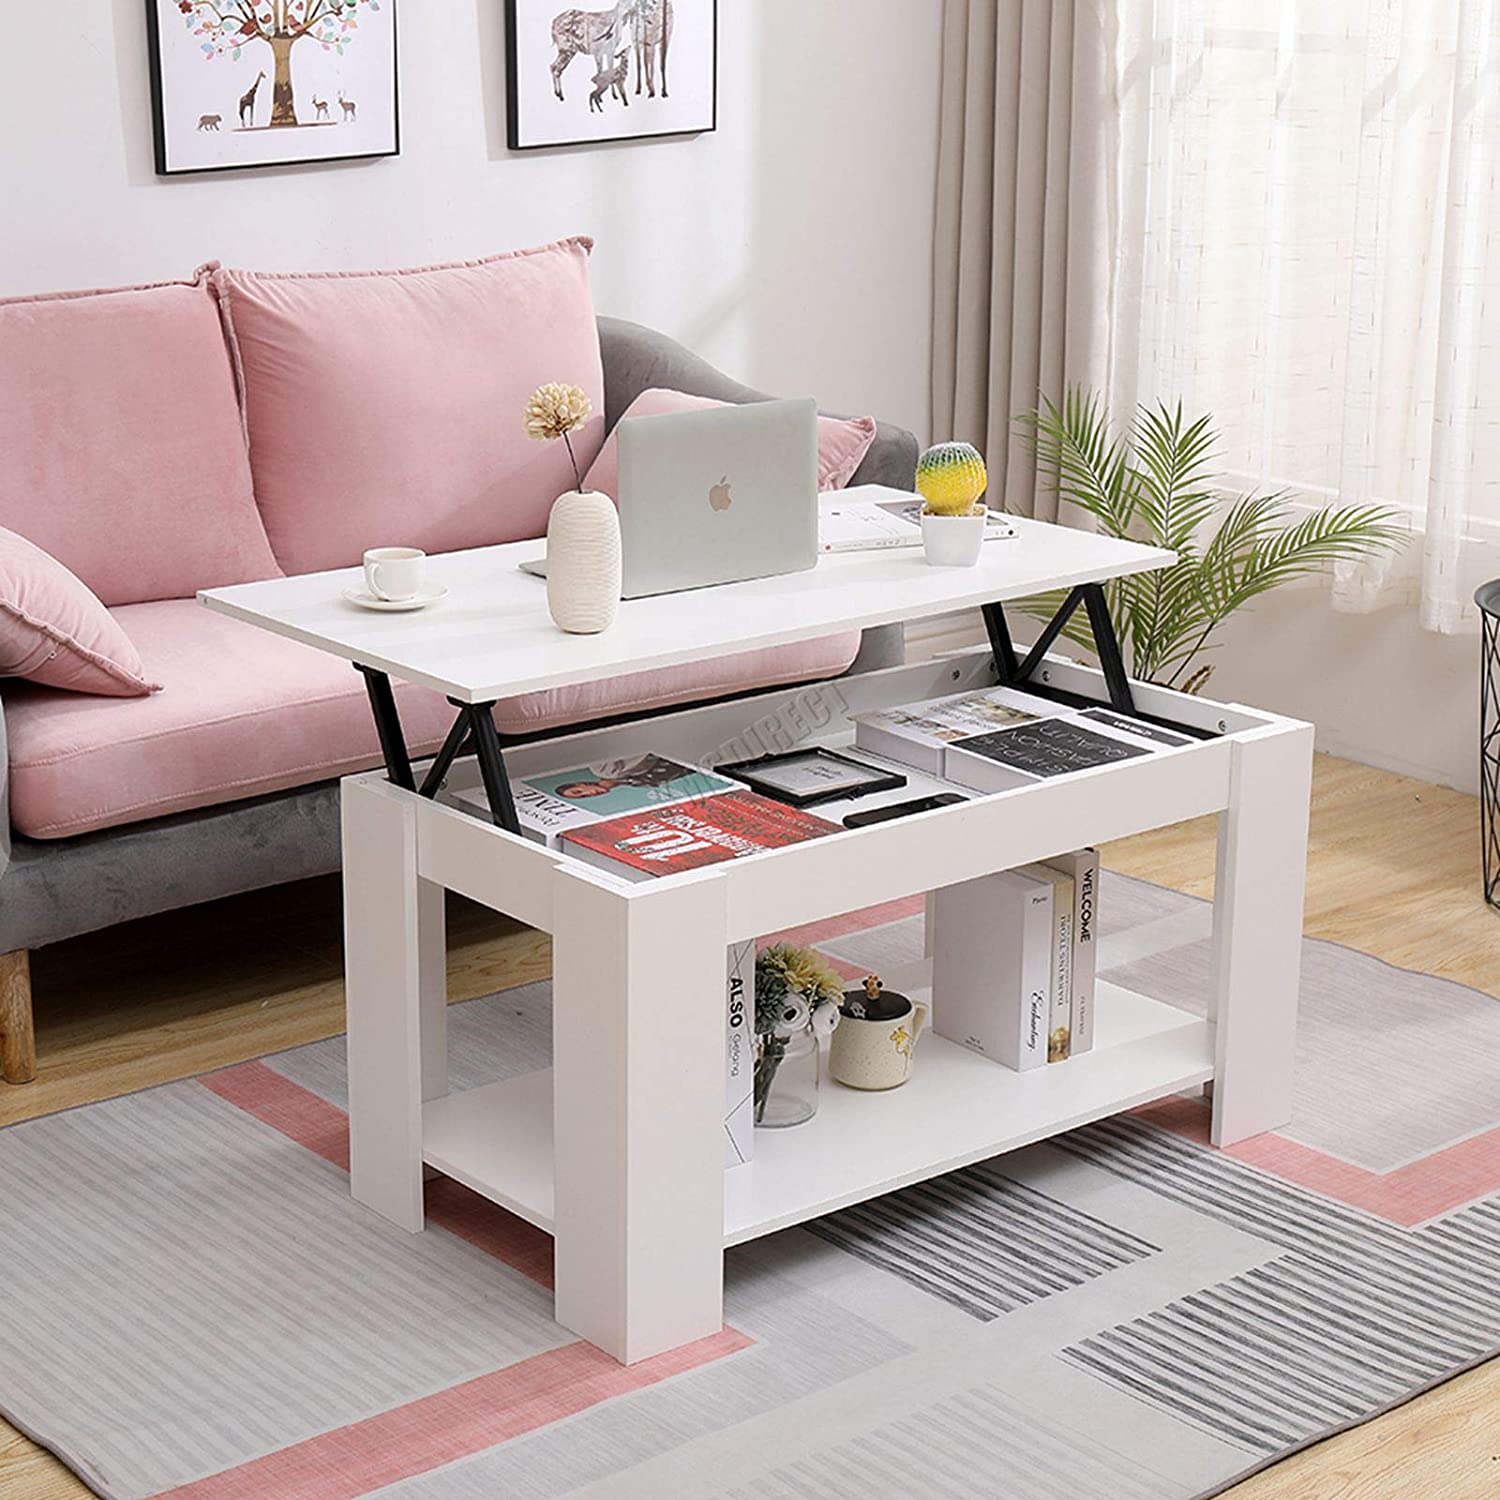 WestWood Wooden Lift Up Top Coffee Table Desk with Hidden Storage